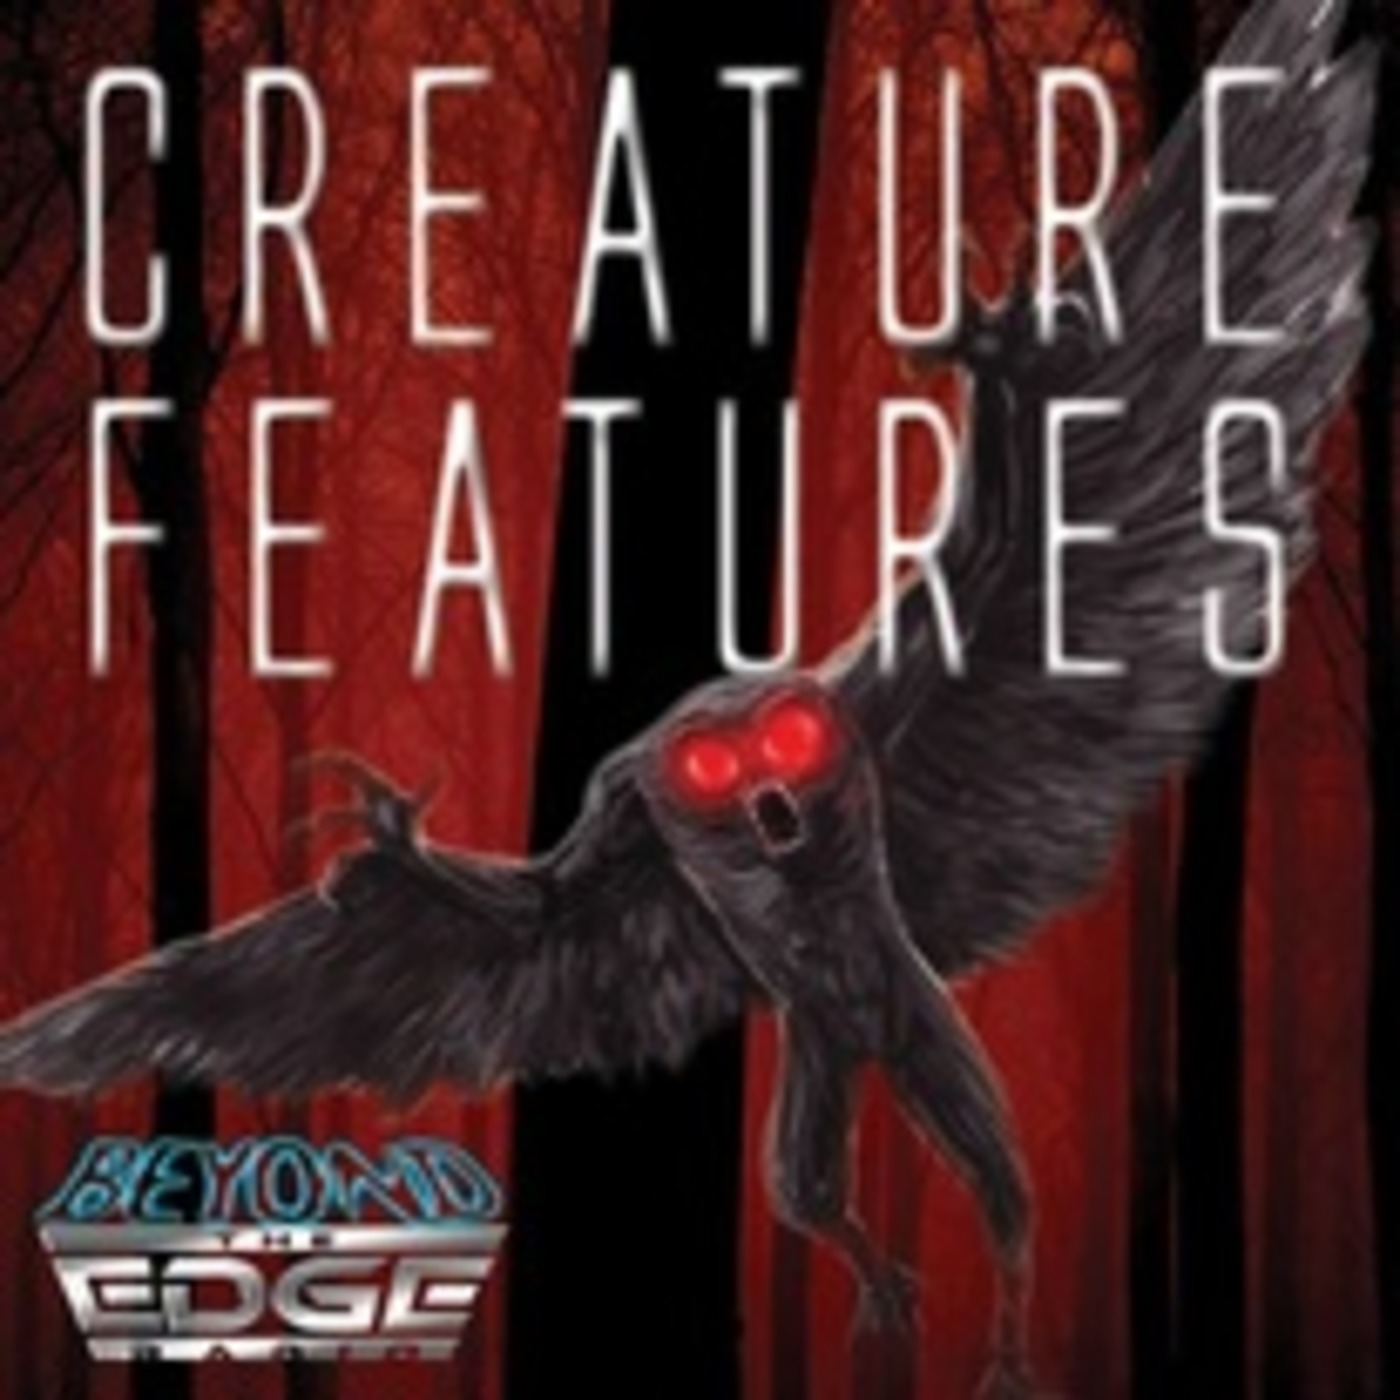 4/19/2015 BTE Radio's Creature Features - Sharon Day